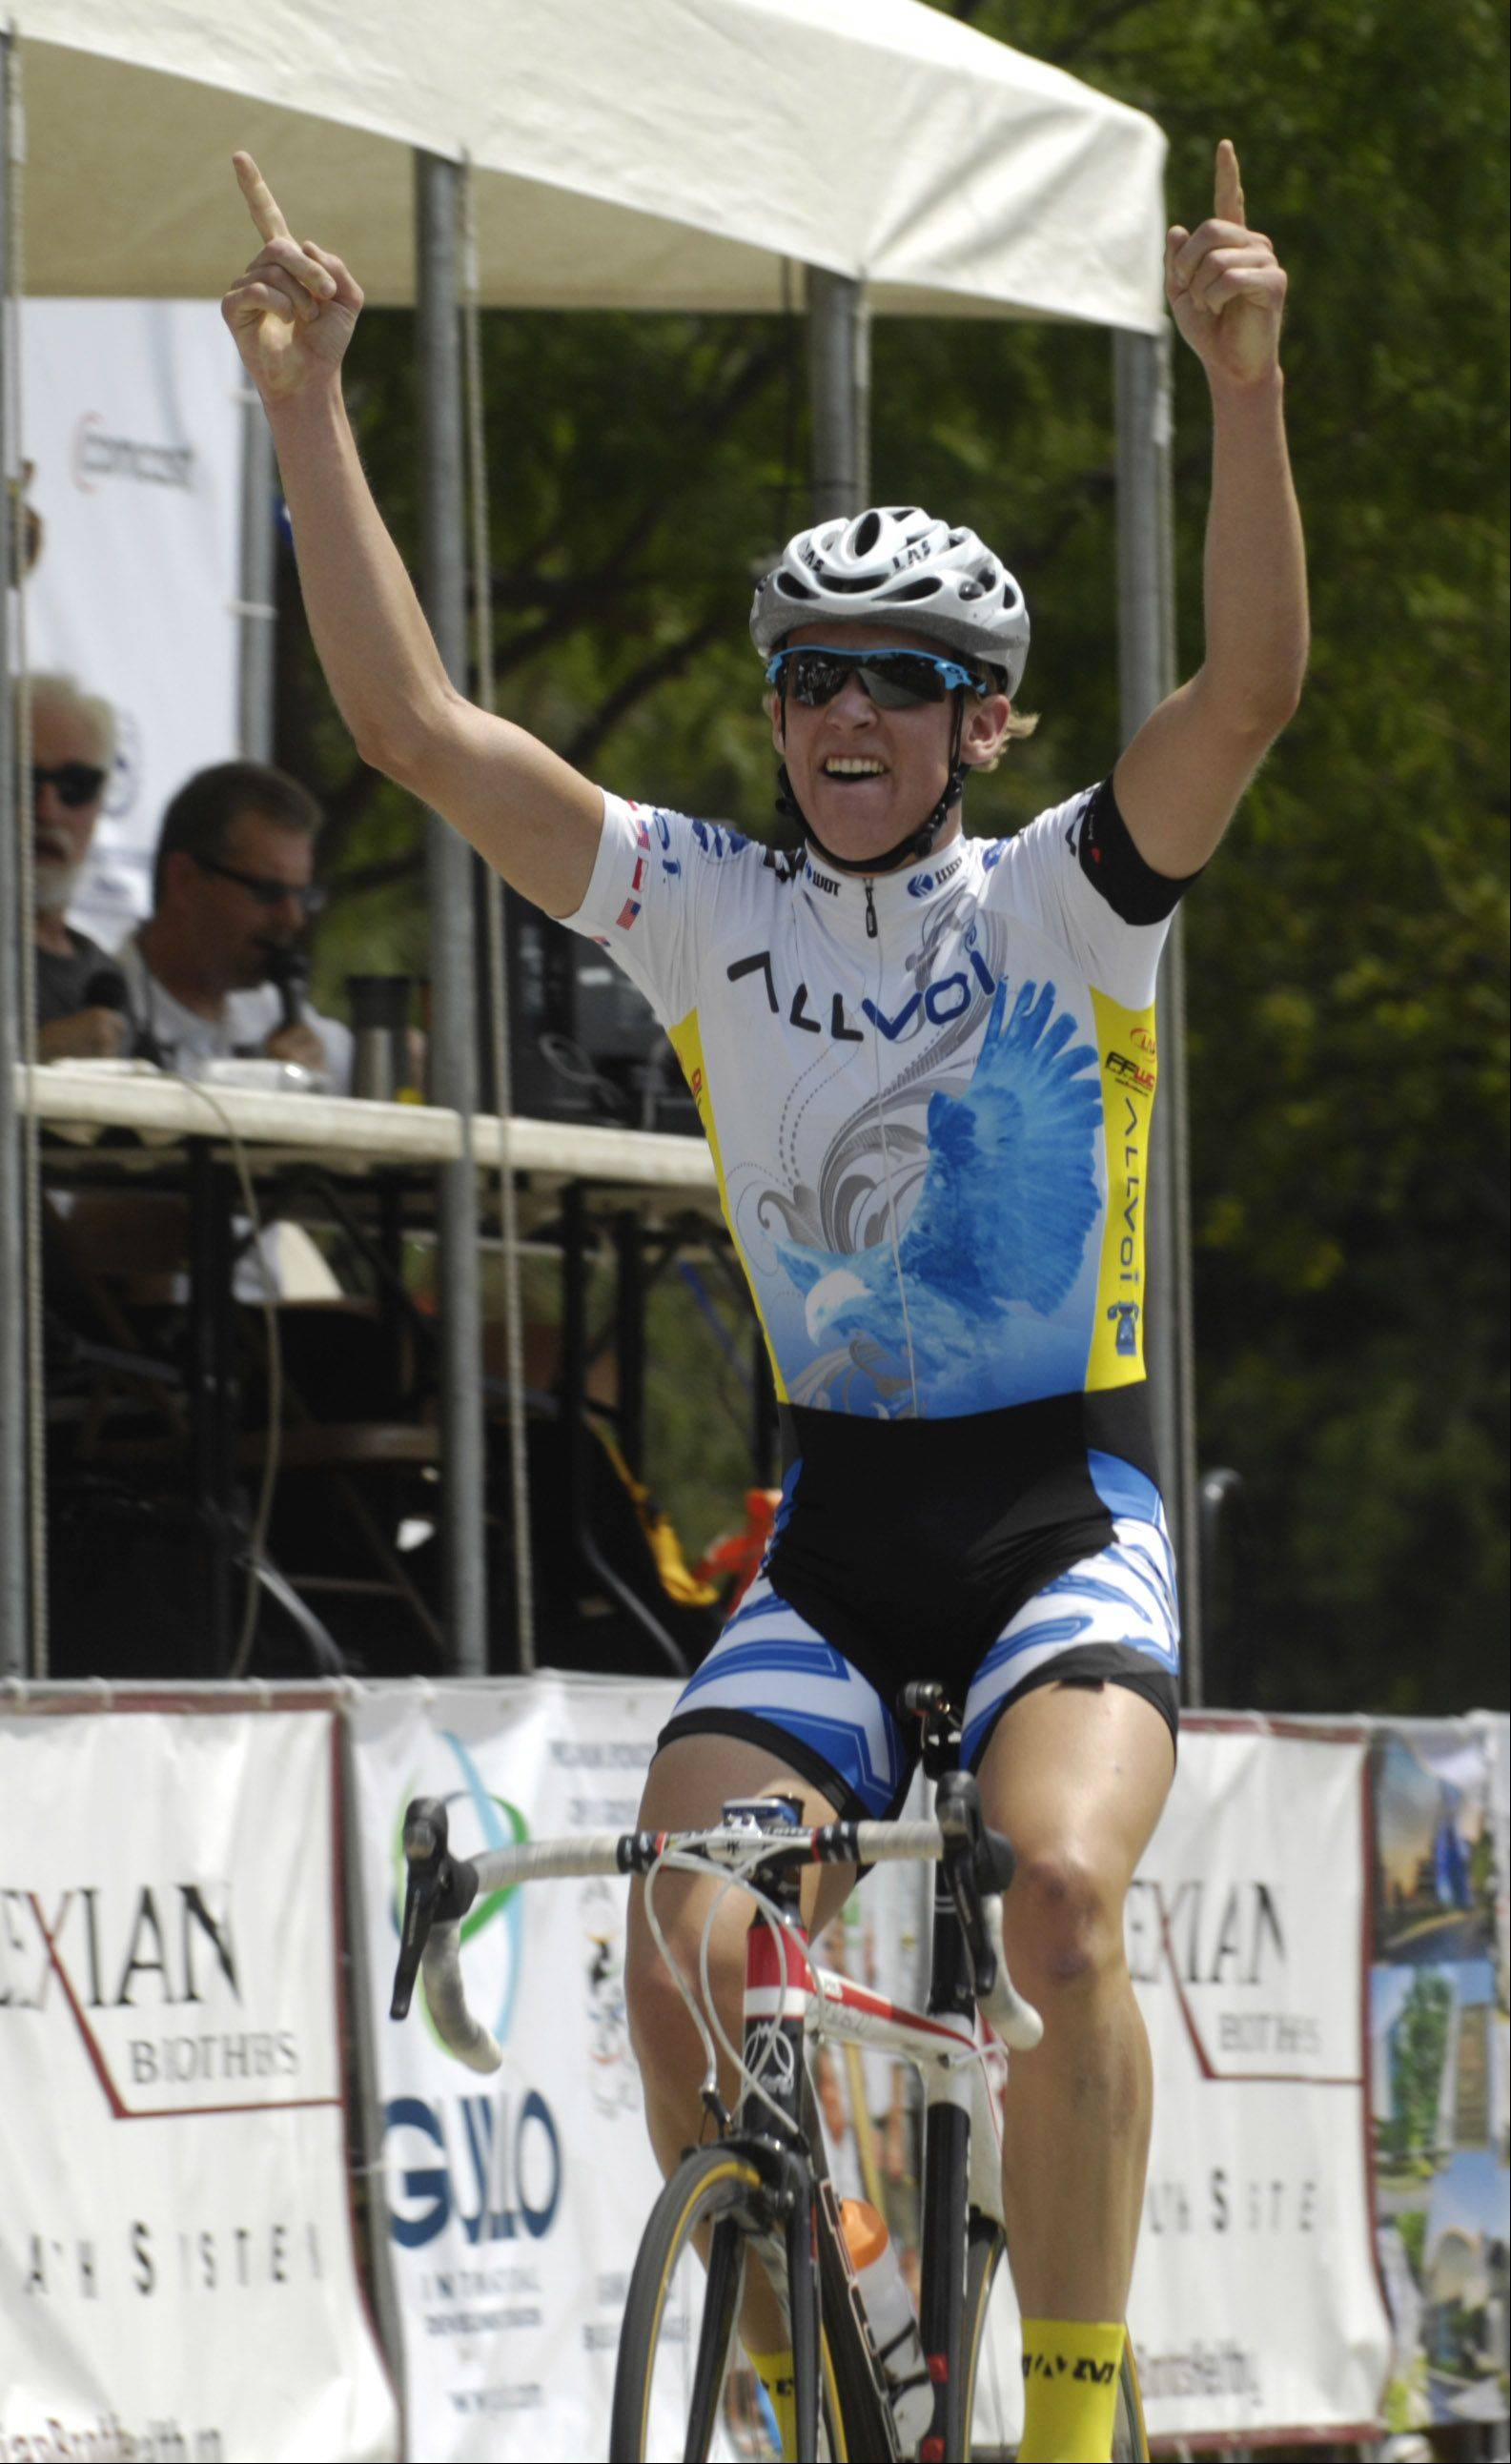 Sven Gartner wins the Rocco Vino's Category 3 during the Tour of Elk Grove Saturday.